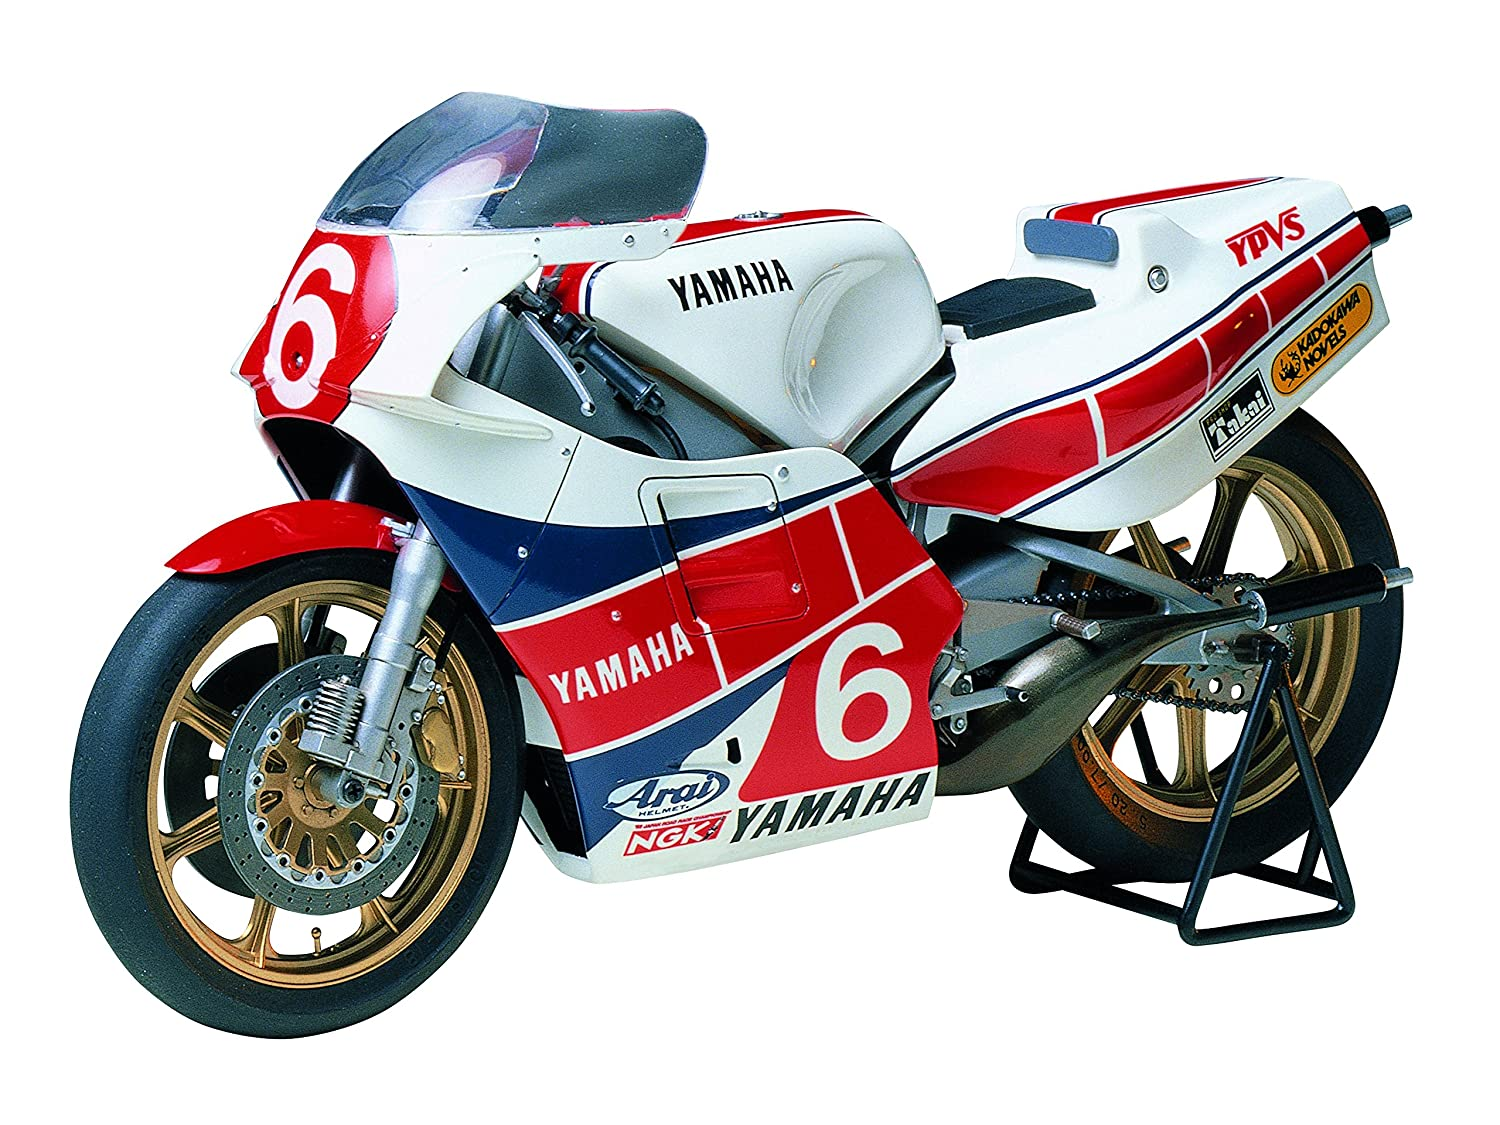 Tamiya 1 12 Yamaha Yzr500 Taira Version   14075  Plastic Model Kit